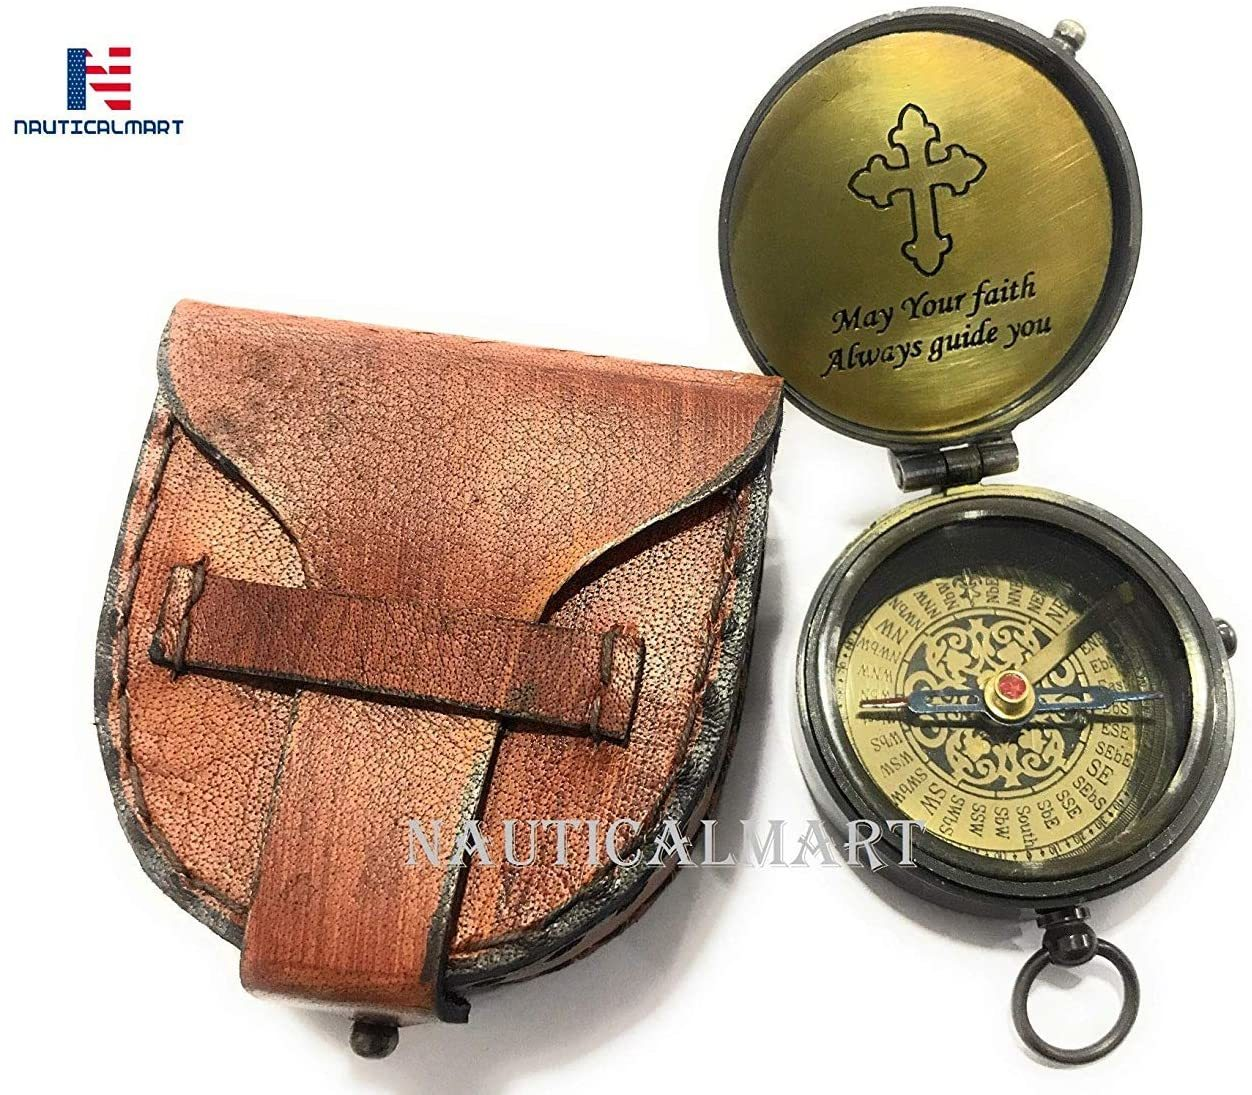 May Your Faith Always Guide You and Cross Engraved On Working Compass, Confirmation Gift Ideas, Baptism Gifts, Birthday, get Well Soon, Graduation Gifts